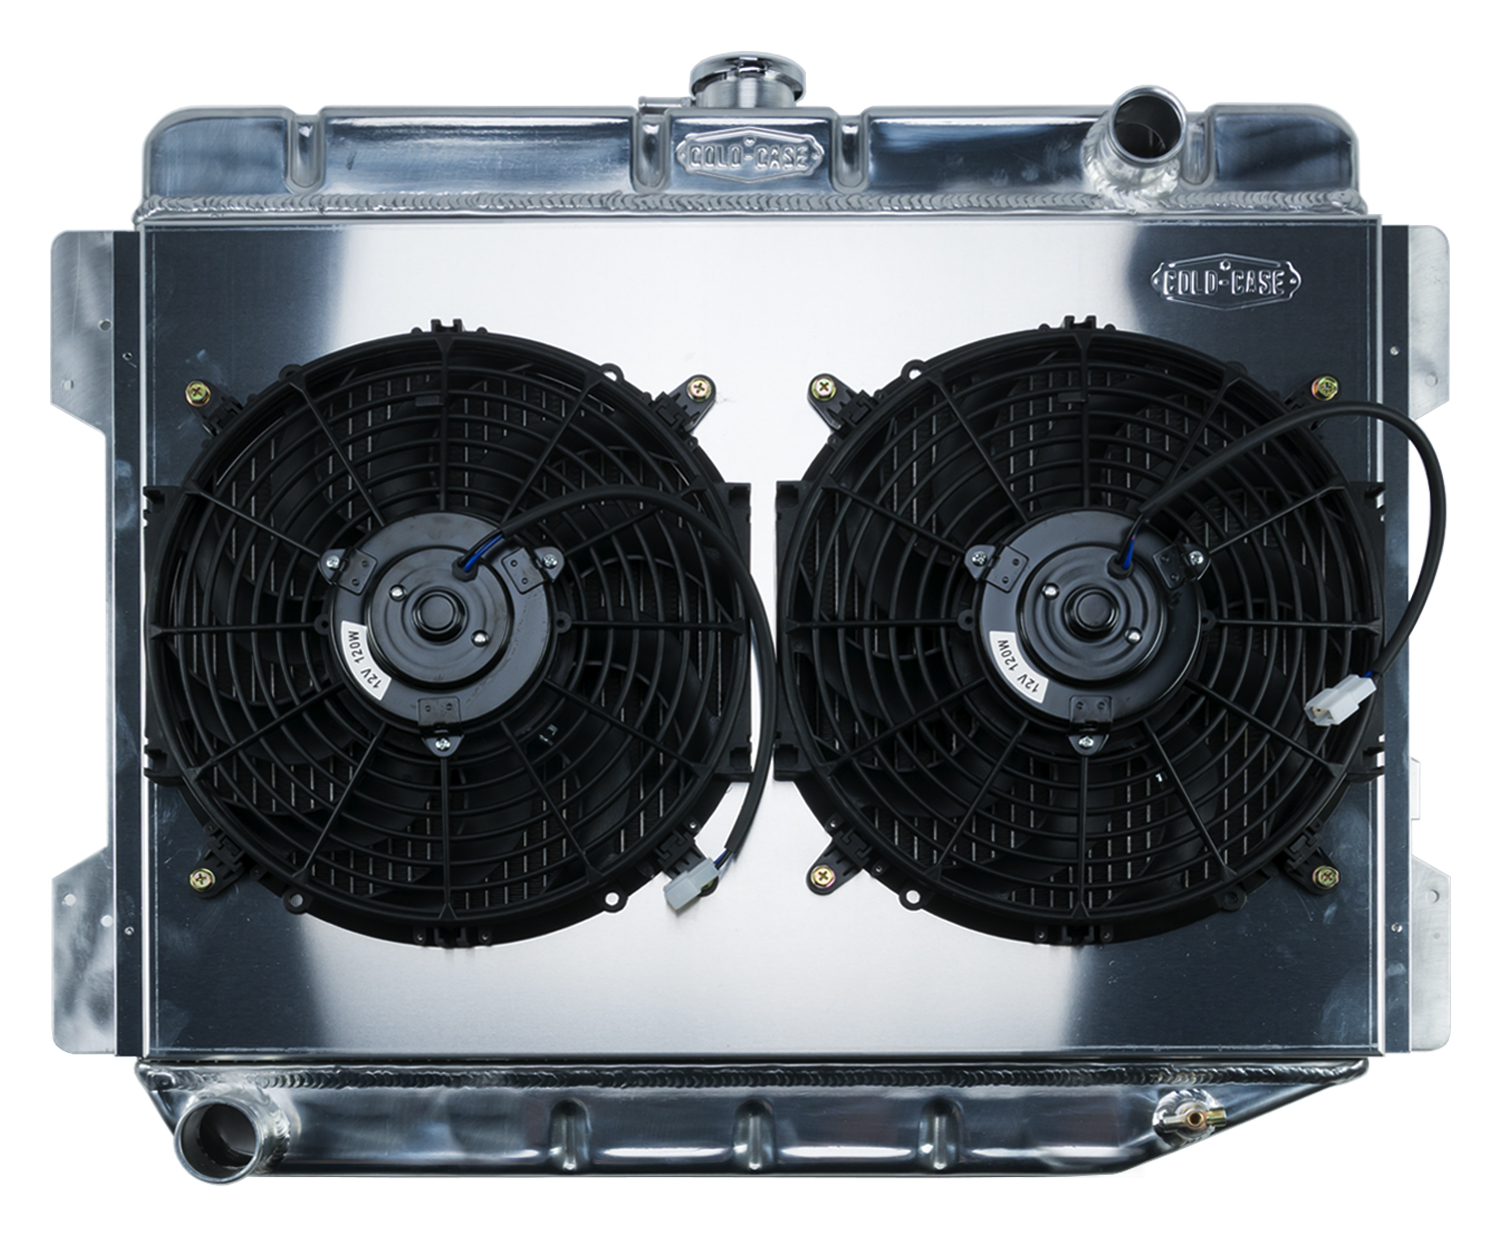 70-74 E Body Challenger Aluminum Performance Radiator And 12 Inch Dual Fan  Kit MT 17x26 Inch Cold Case Radiators